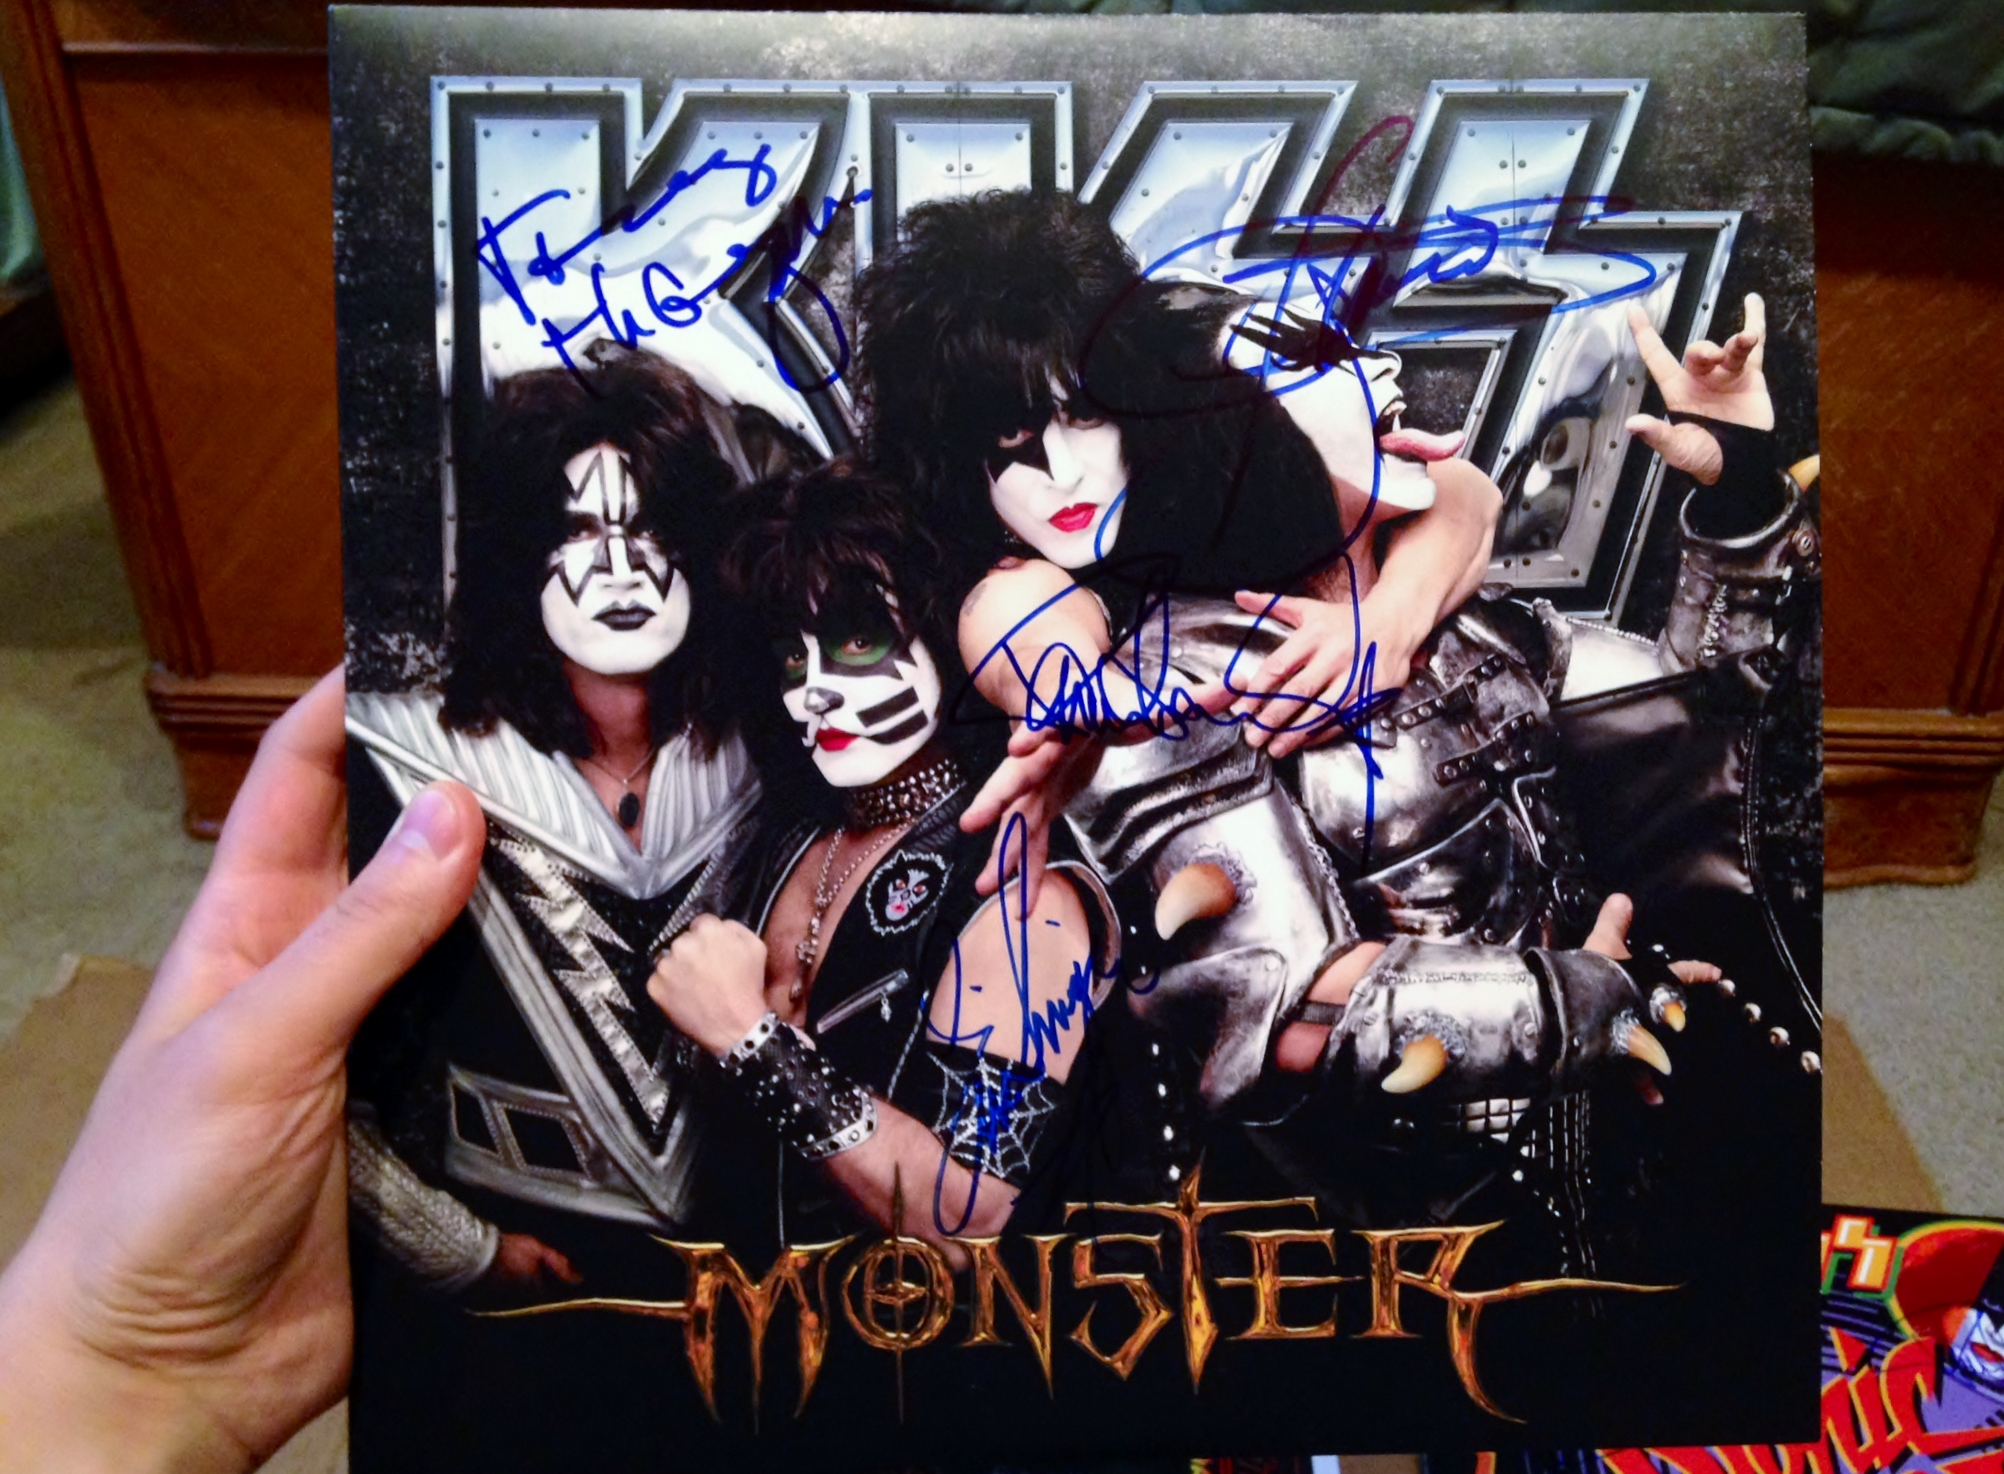 Kiss the best show on earth michael cavacini photo 3 1 photo 4 after the meet and greet with kiss m4hsunfo